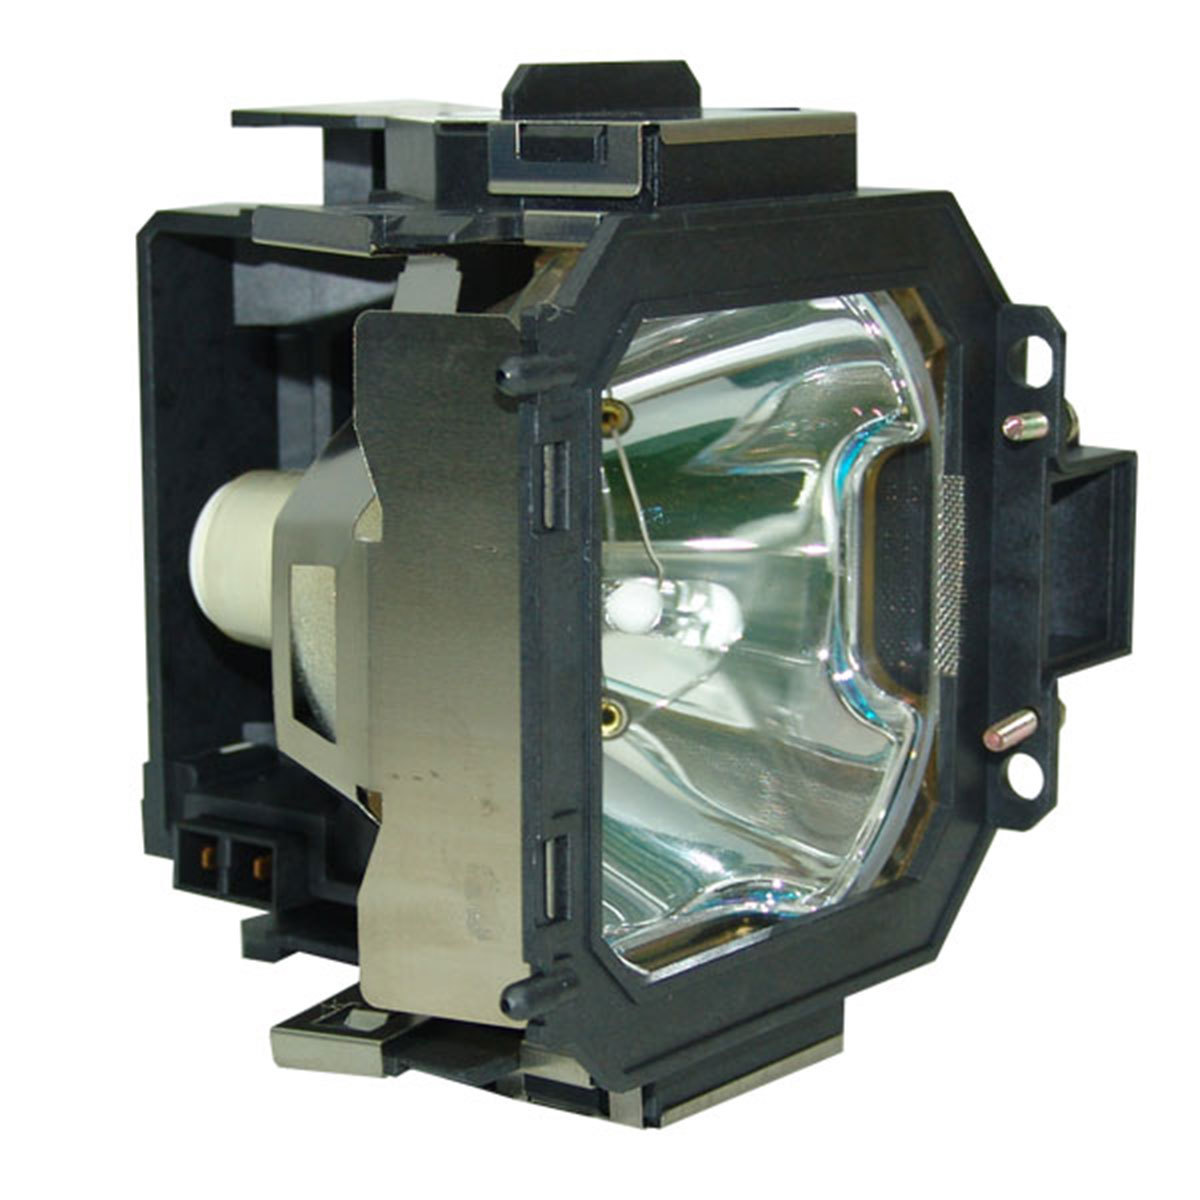 Primary image for Sanyo POA-LMP105 Osram Projector Lamp Module